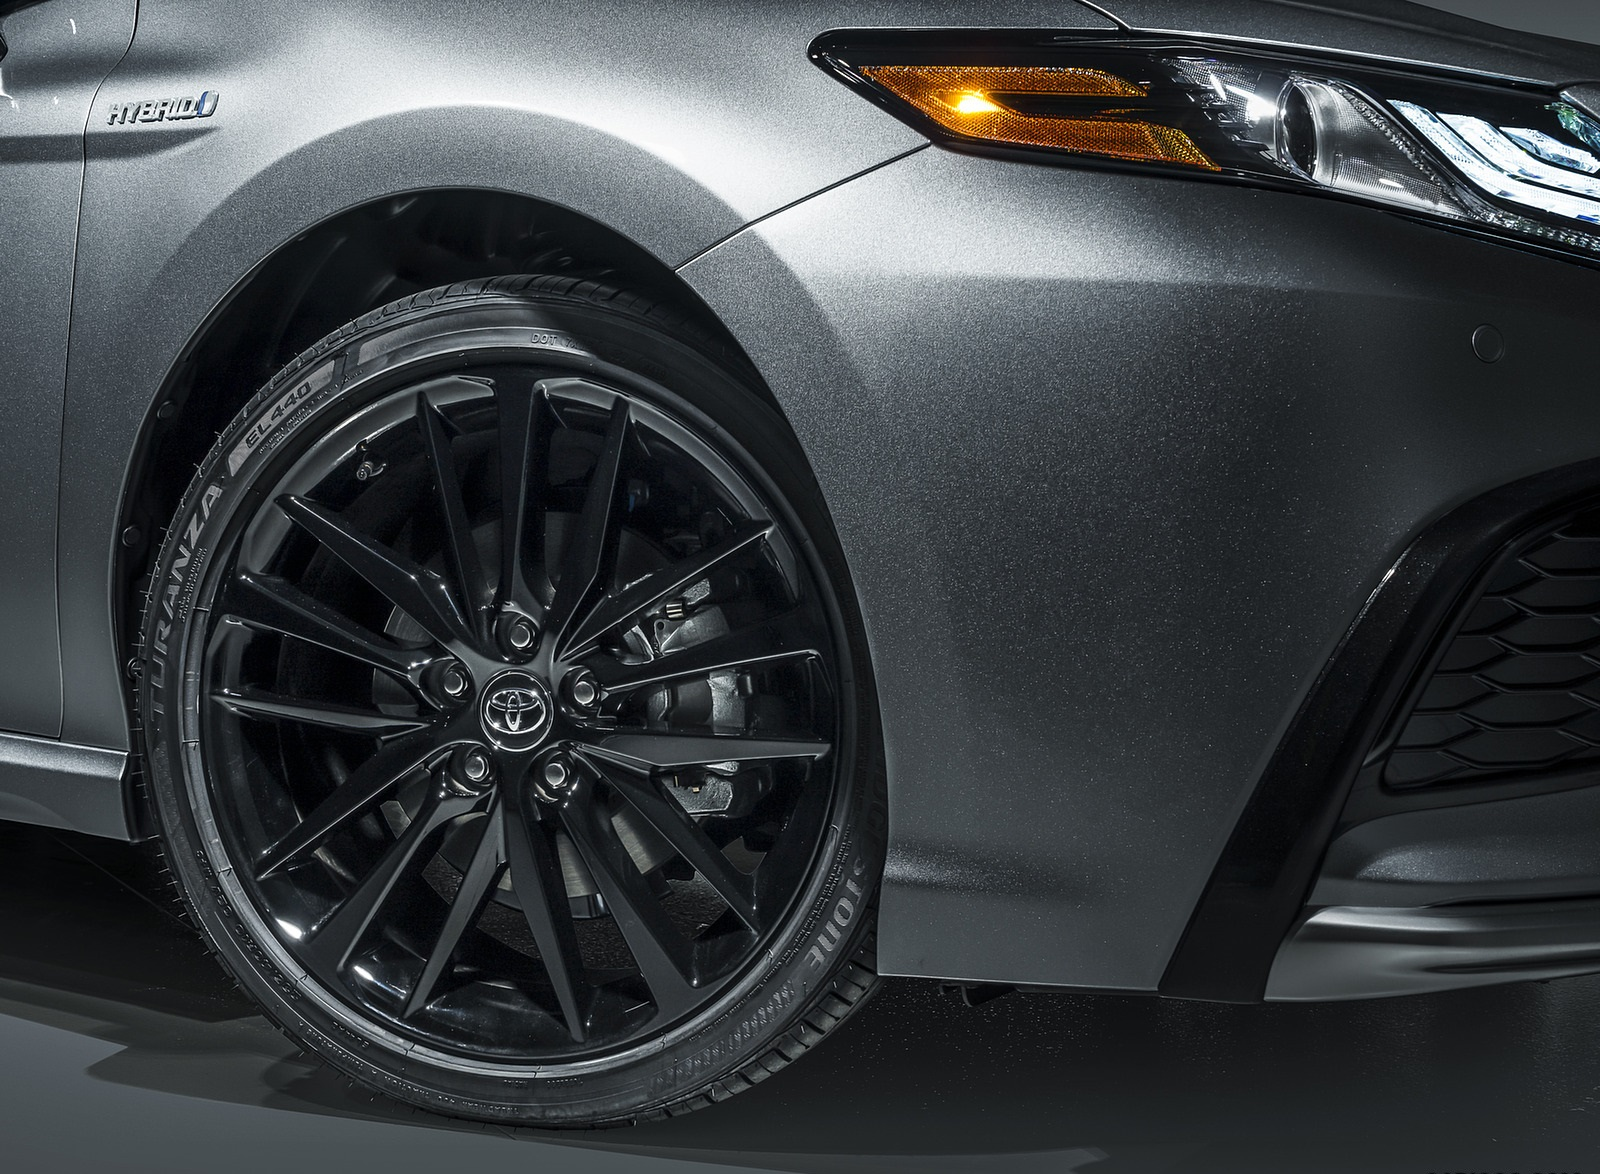 2021 Toyota Camry XSE Hybrid Wheel Wallpapers (6)